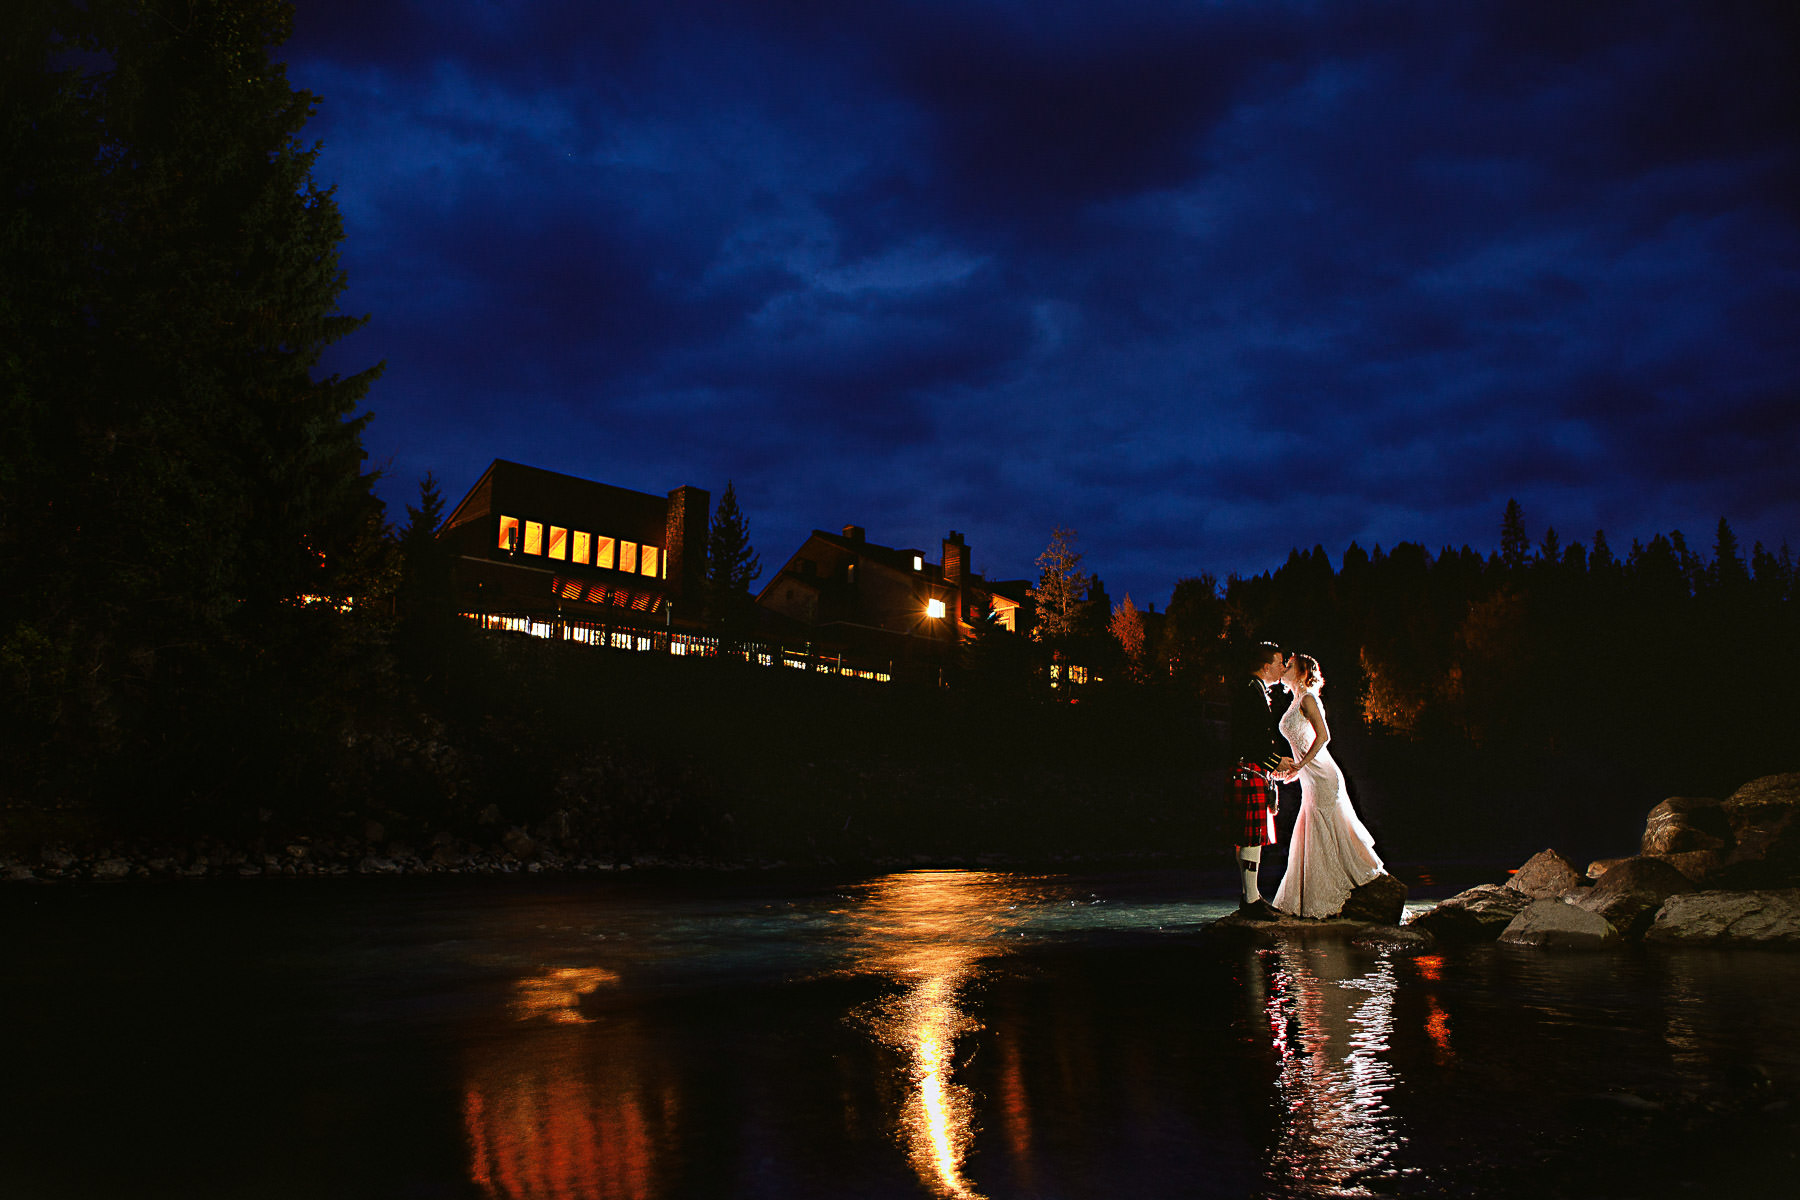 Dramatic nighttime portrait of wedding couple at Panorama ski hill